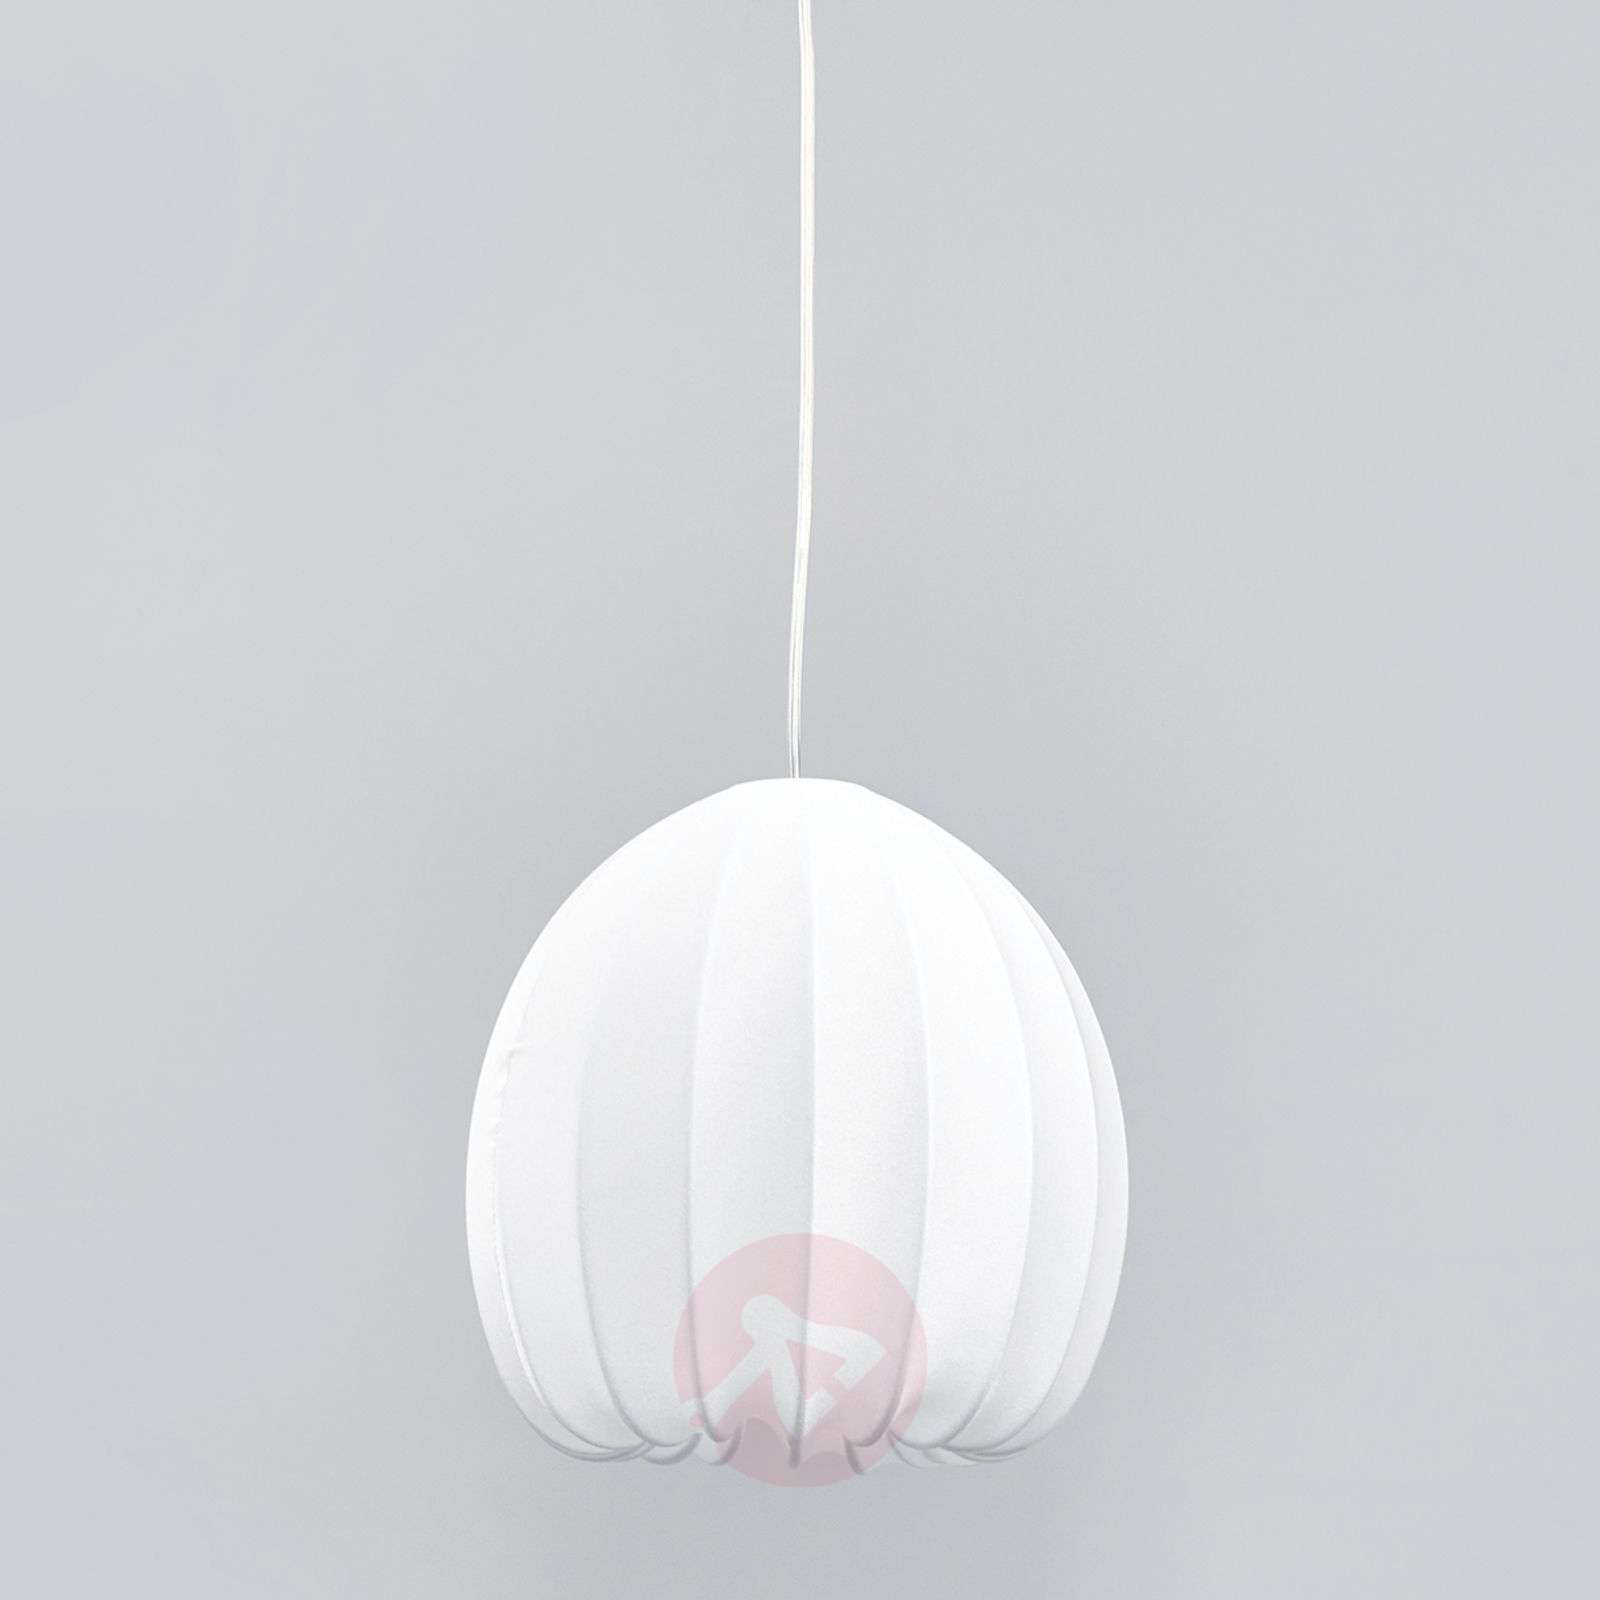 Suspension en textile Muse blanche-1088051-01